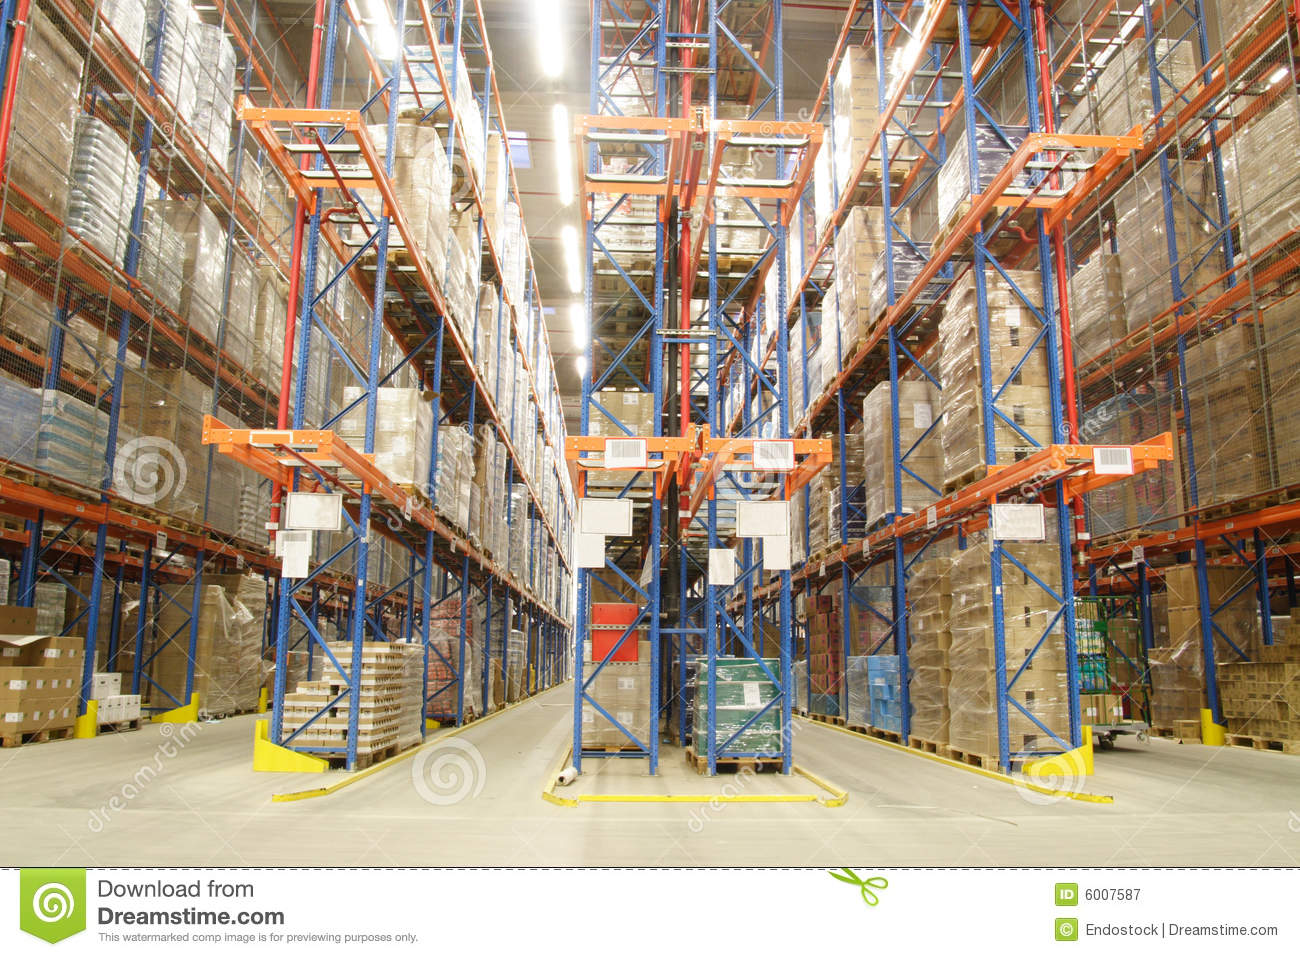 In a warehouse